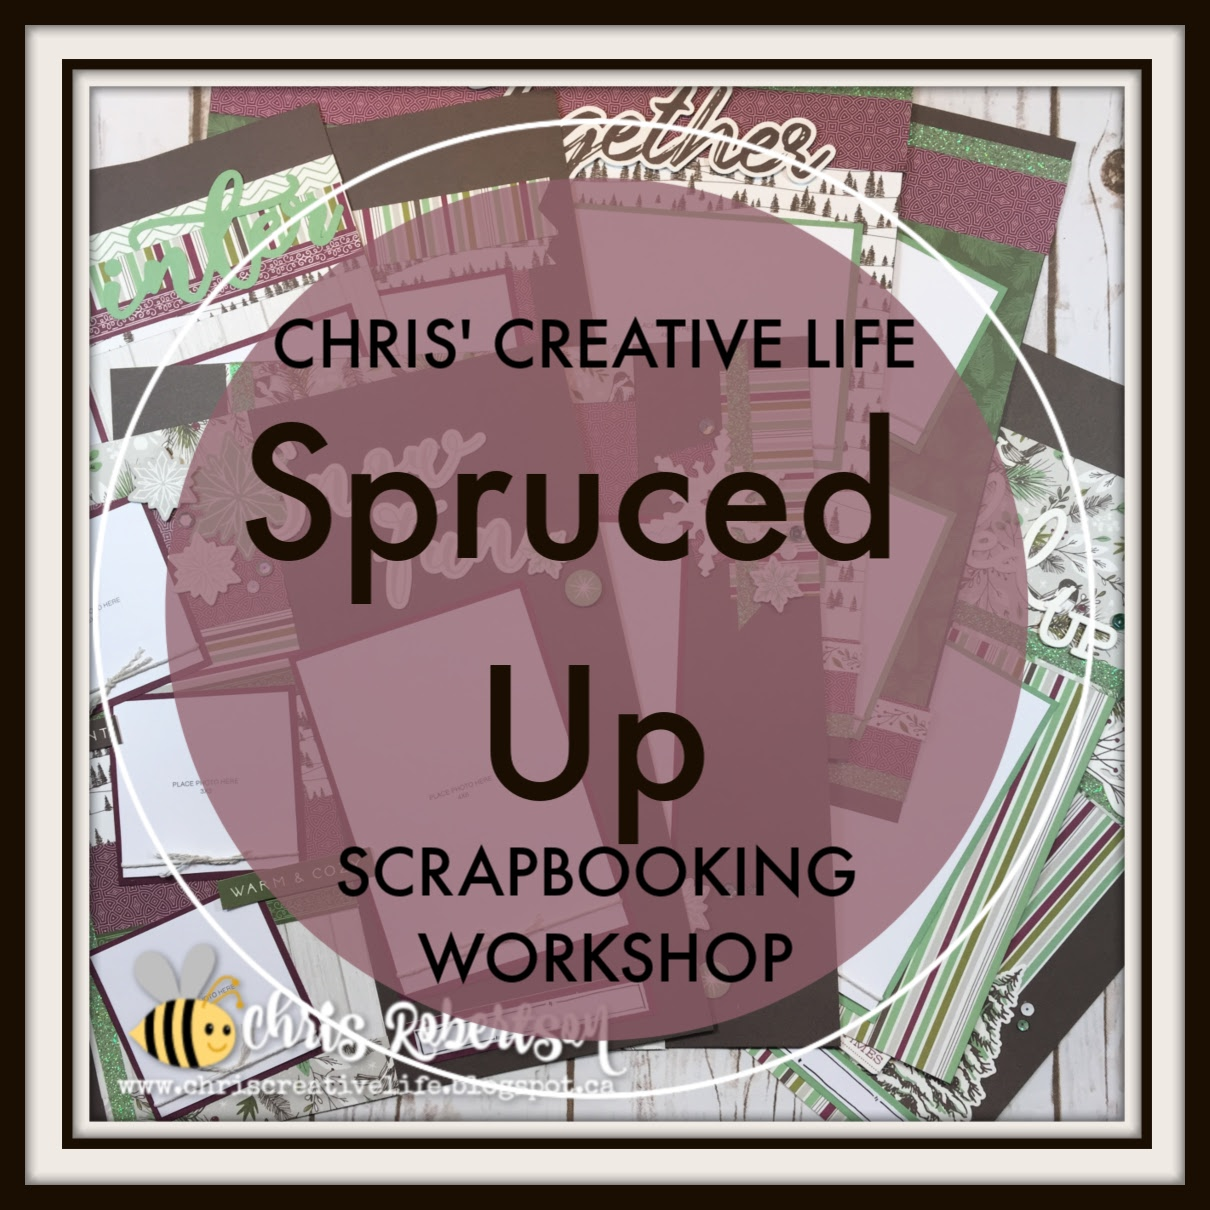 Spruced Up Scrapbooking Workshop Guide